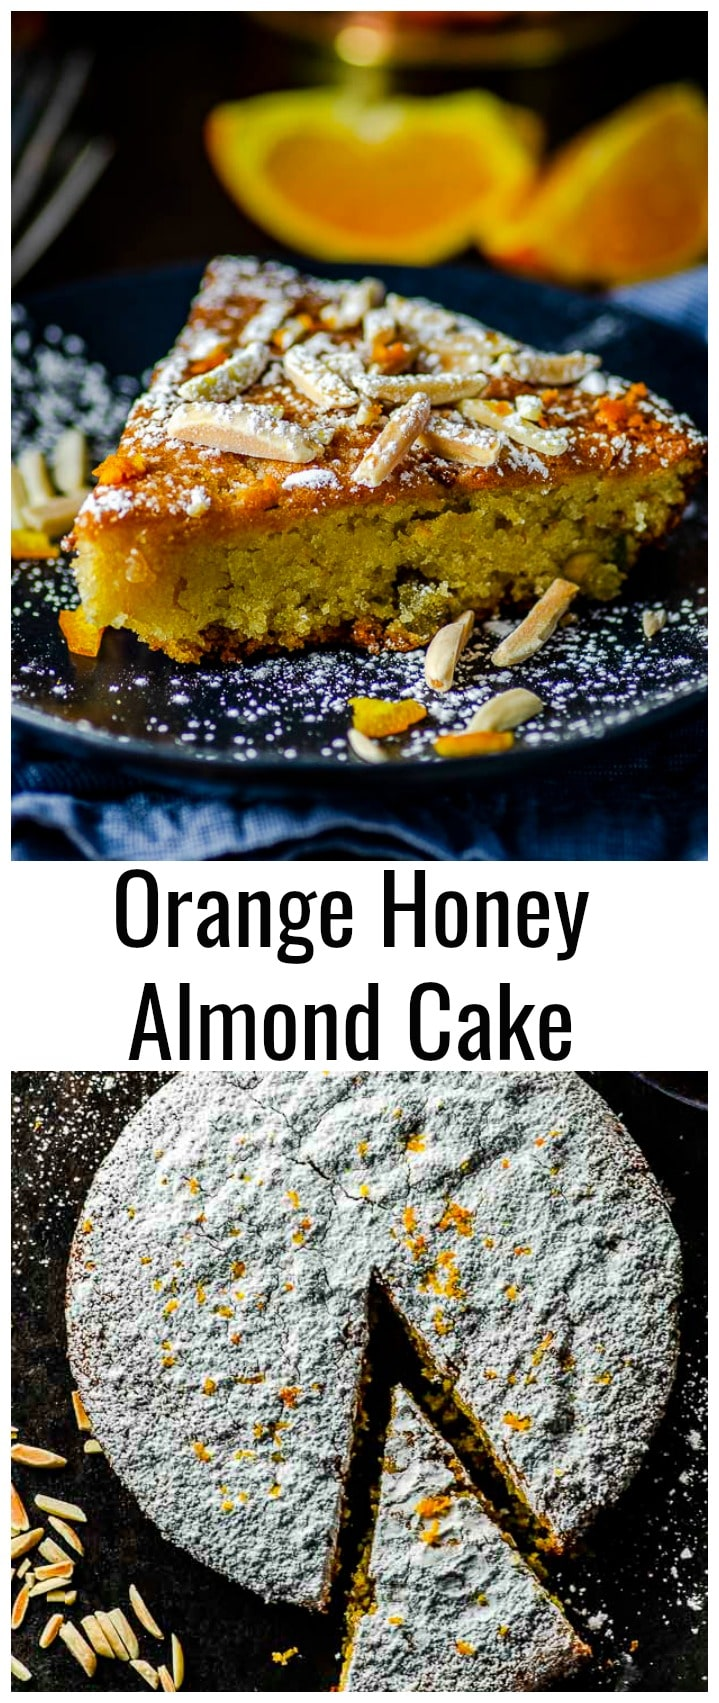 Eight simple ingredients are all you need to make our Sweet, chewy, nutty and satisfyingflourless Orange Honey Almond Cake. This Almond Cake makes for a fabulous ending of your Rosh HaShanah, Passover or holiday meal. #rosh Hashanah #passover #gluten-free #cake #flourless #almonds #orange #honey #dessert #easy